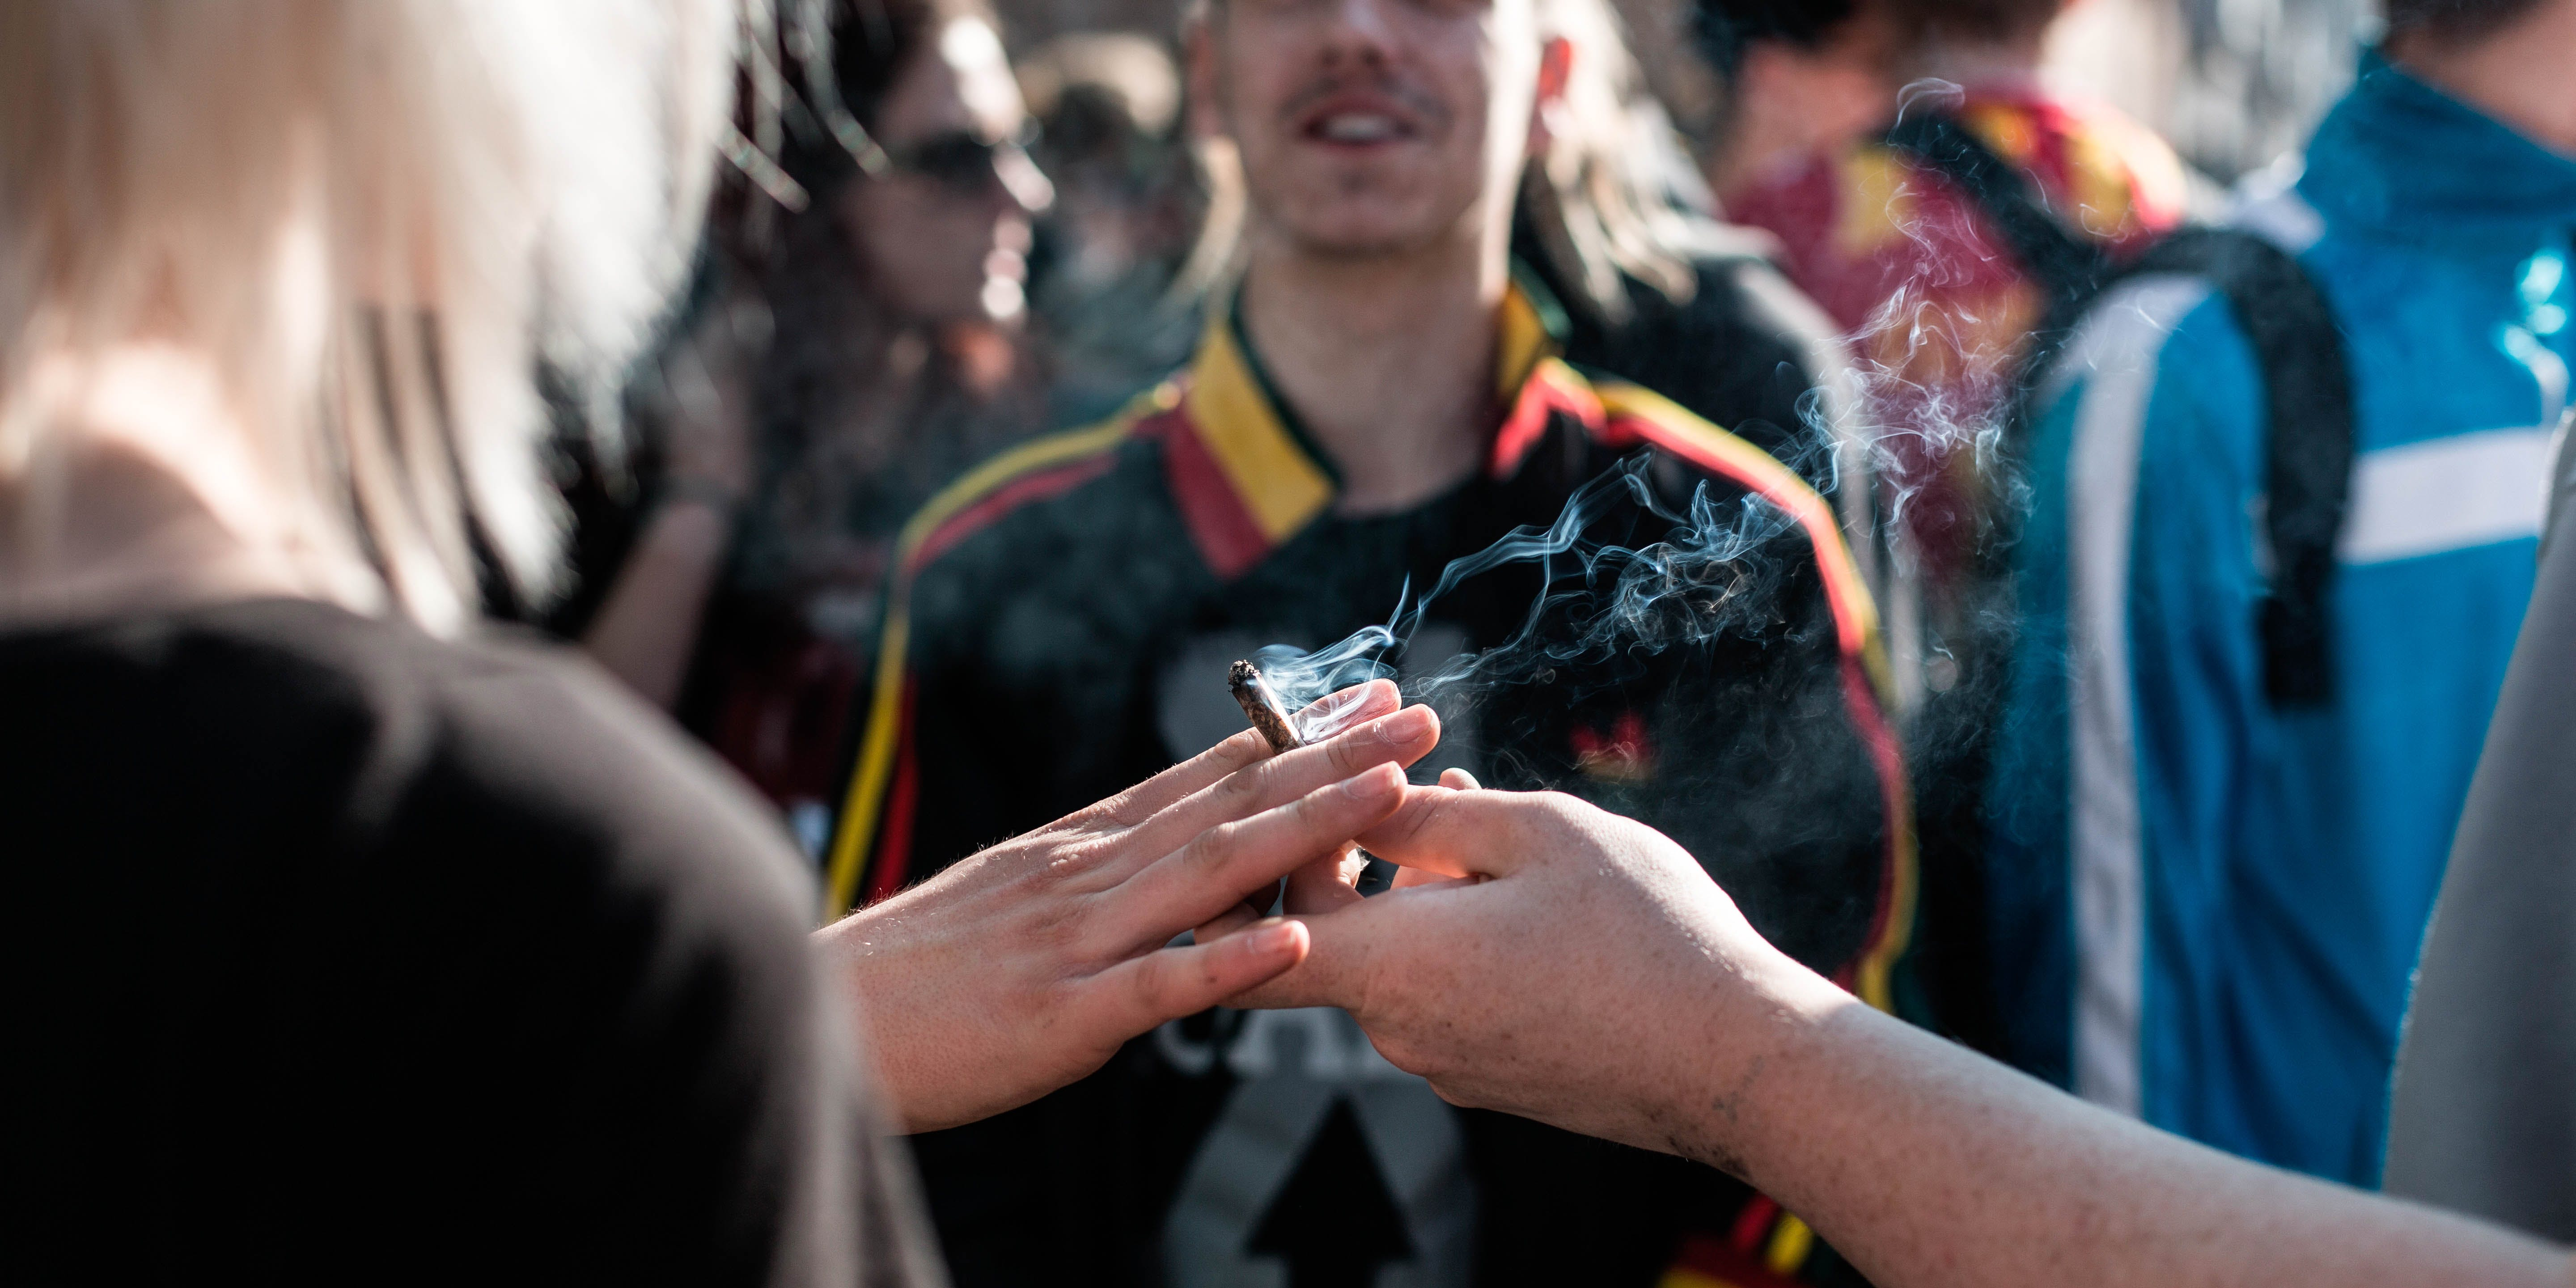 A joint is passed from one hand to another at the annual Pro 420 Cannabis Day in Copenhagen. Denmark 20/04 2014. A recent study found neighborhood dispensaries don't increase adolescent cannabis use